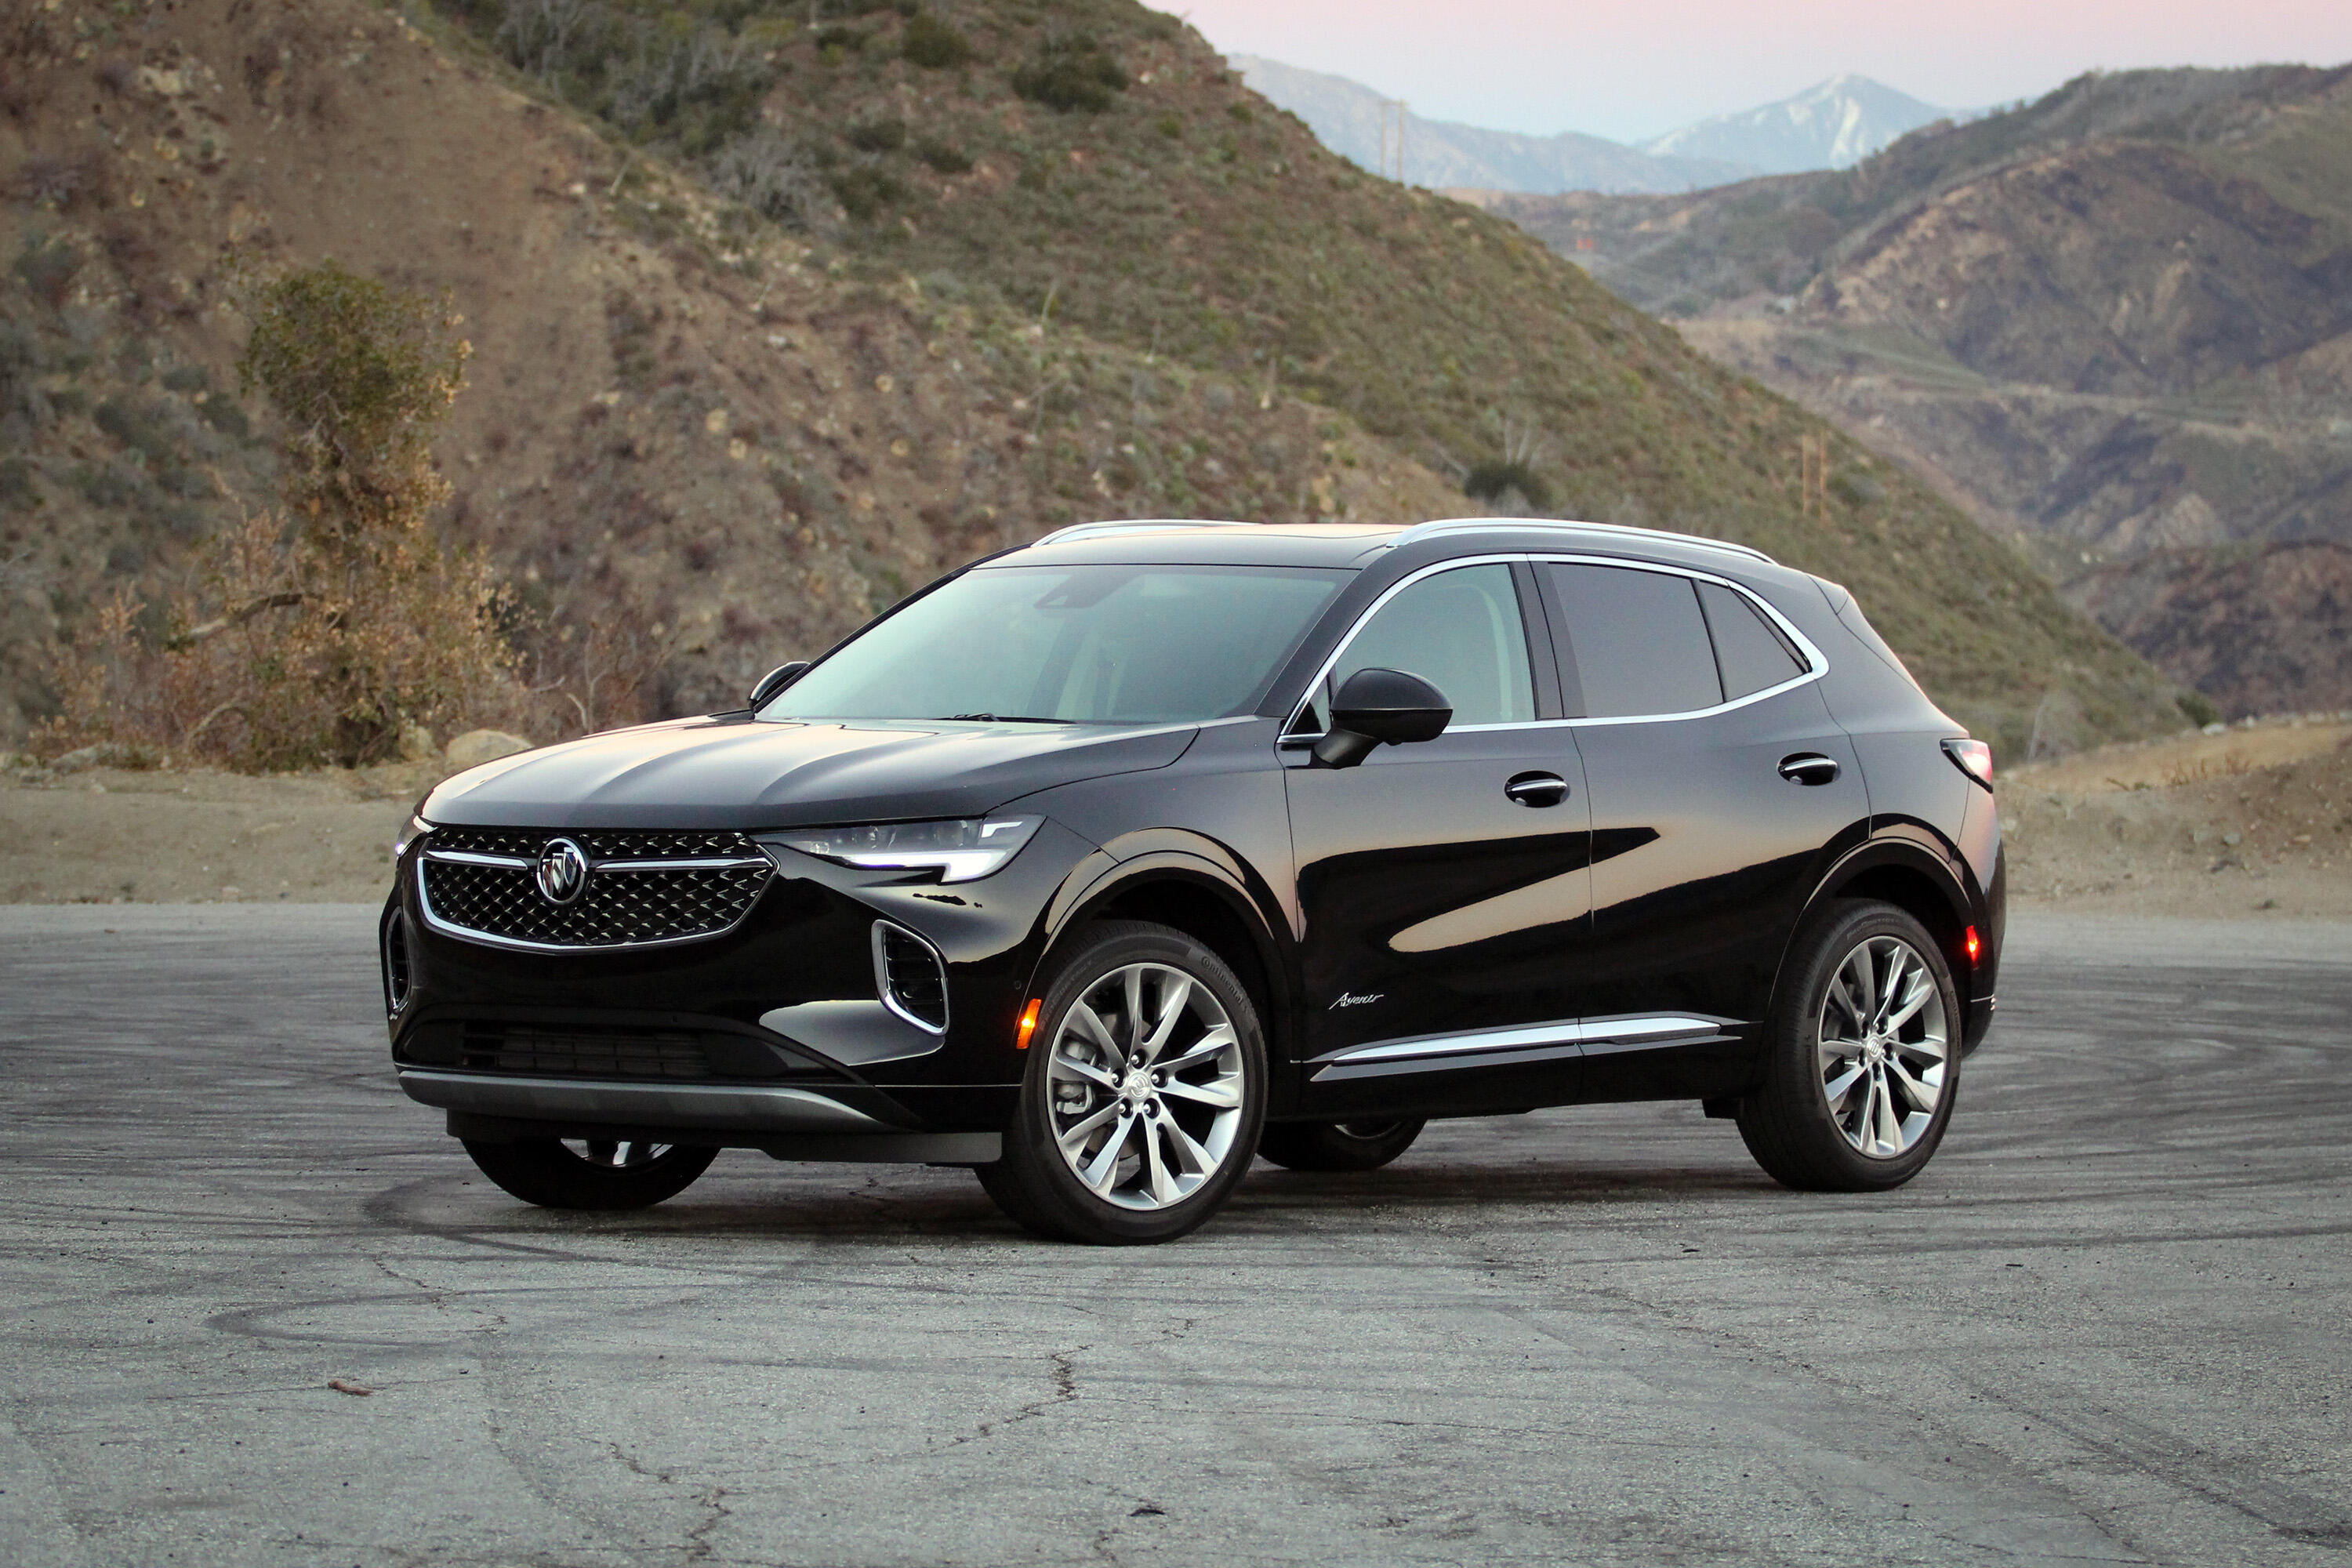 2021 Buick Envision